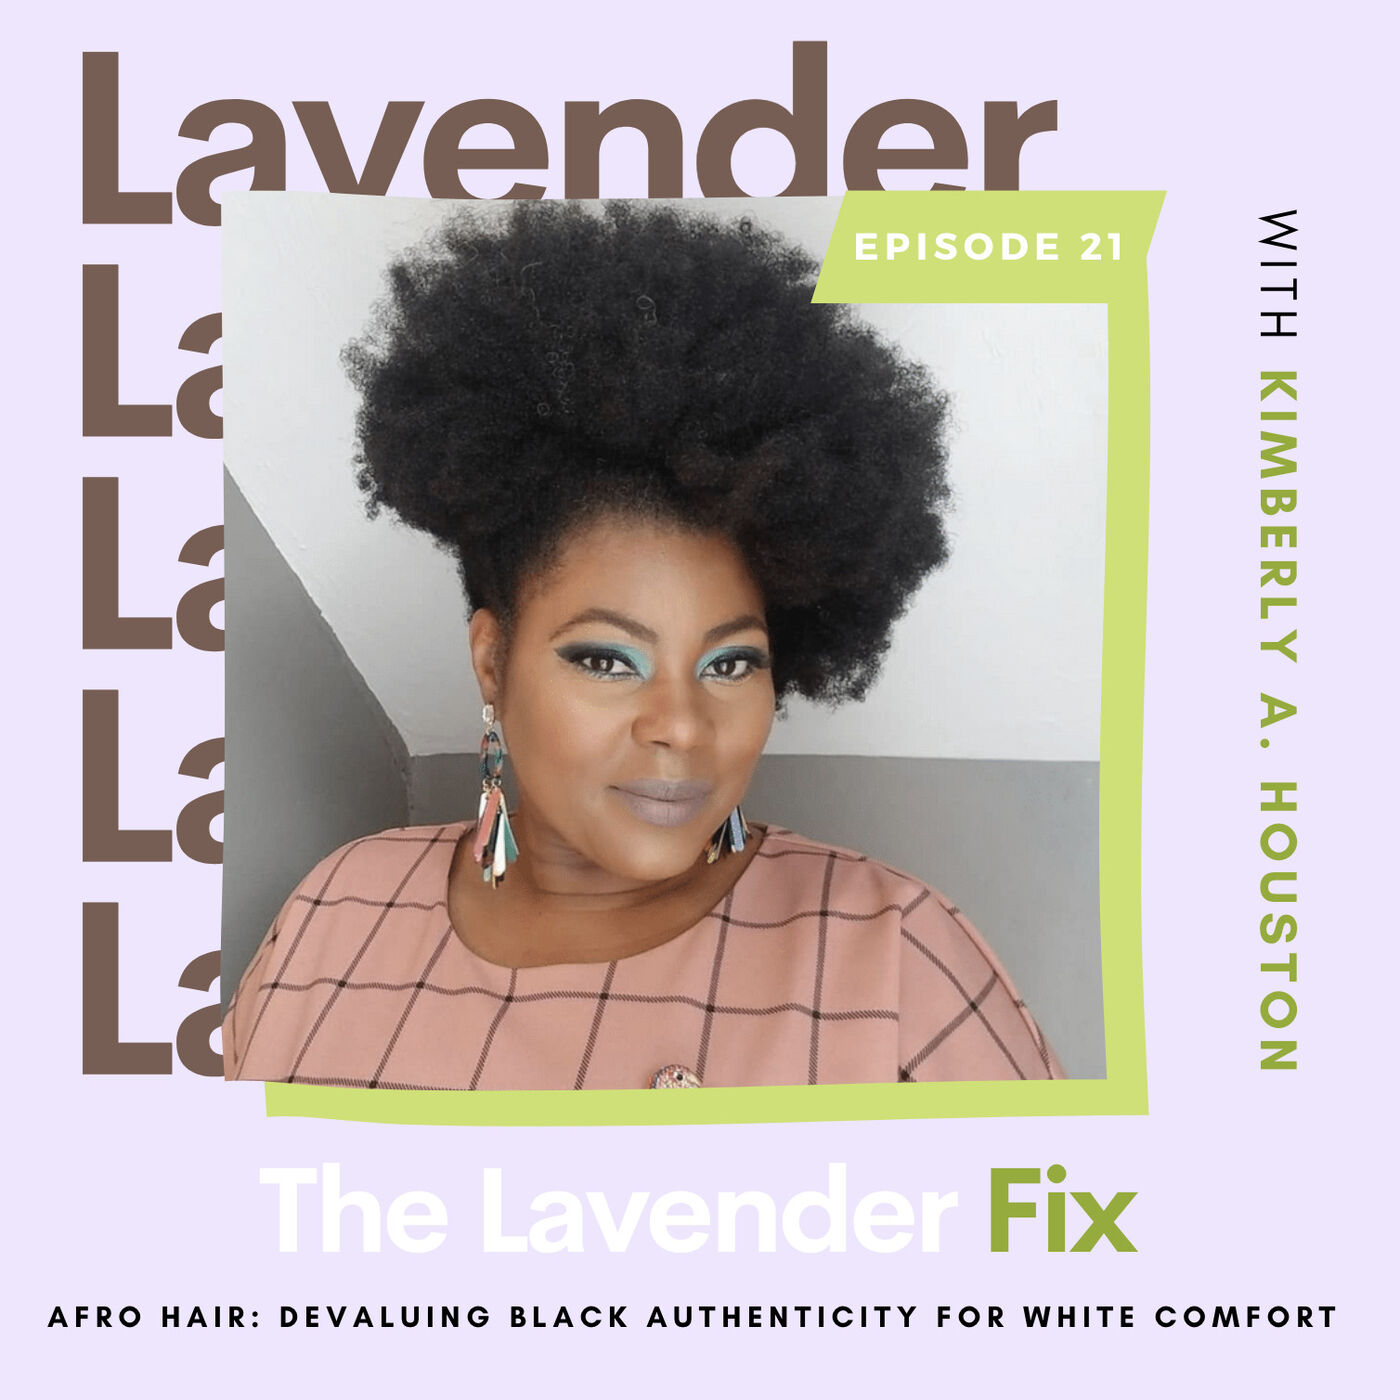 Afro Hair: Devaluing Black Authenticity for White Comfort